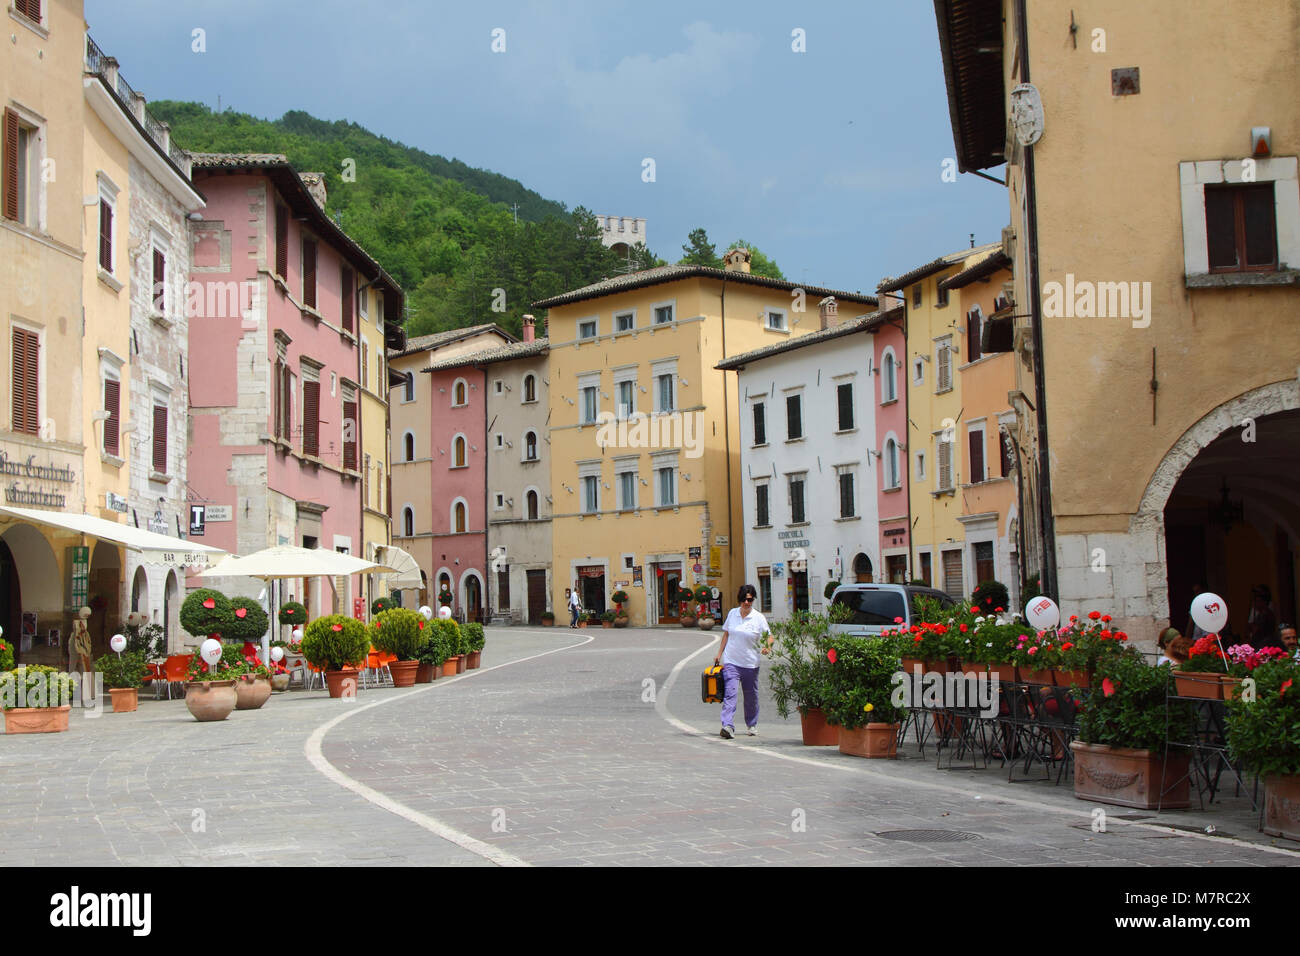 Main street in Visso, the heart of the Sibillini national park, Le Marche, Italy - Stock Image